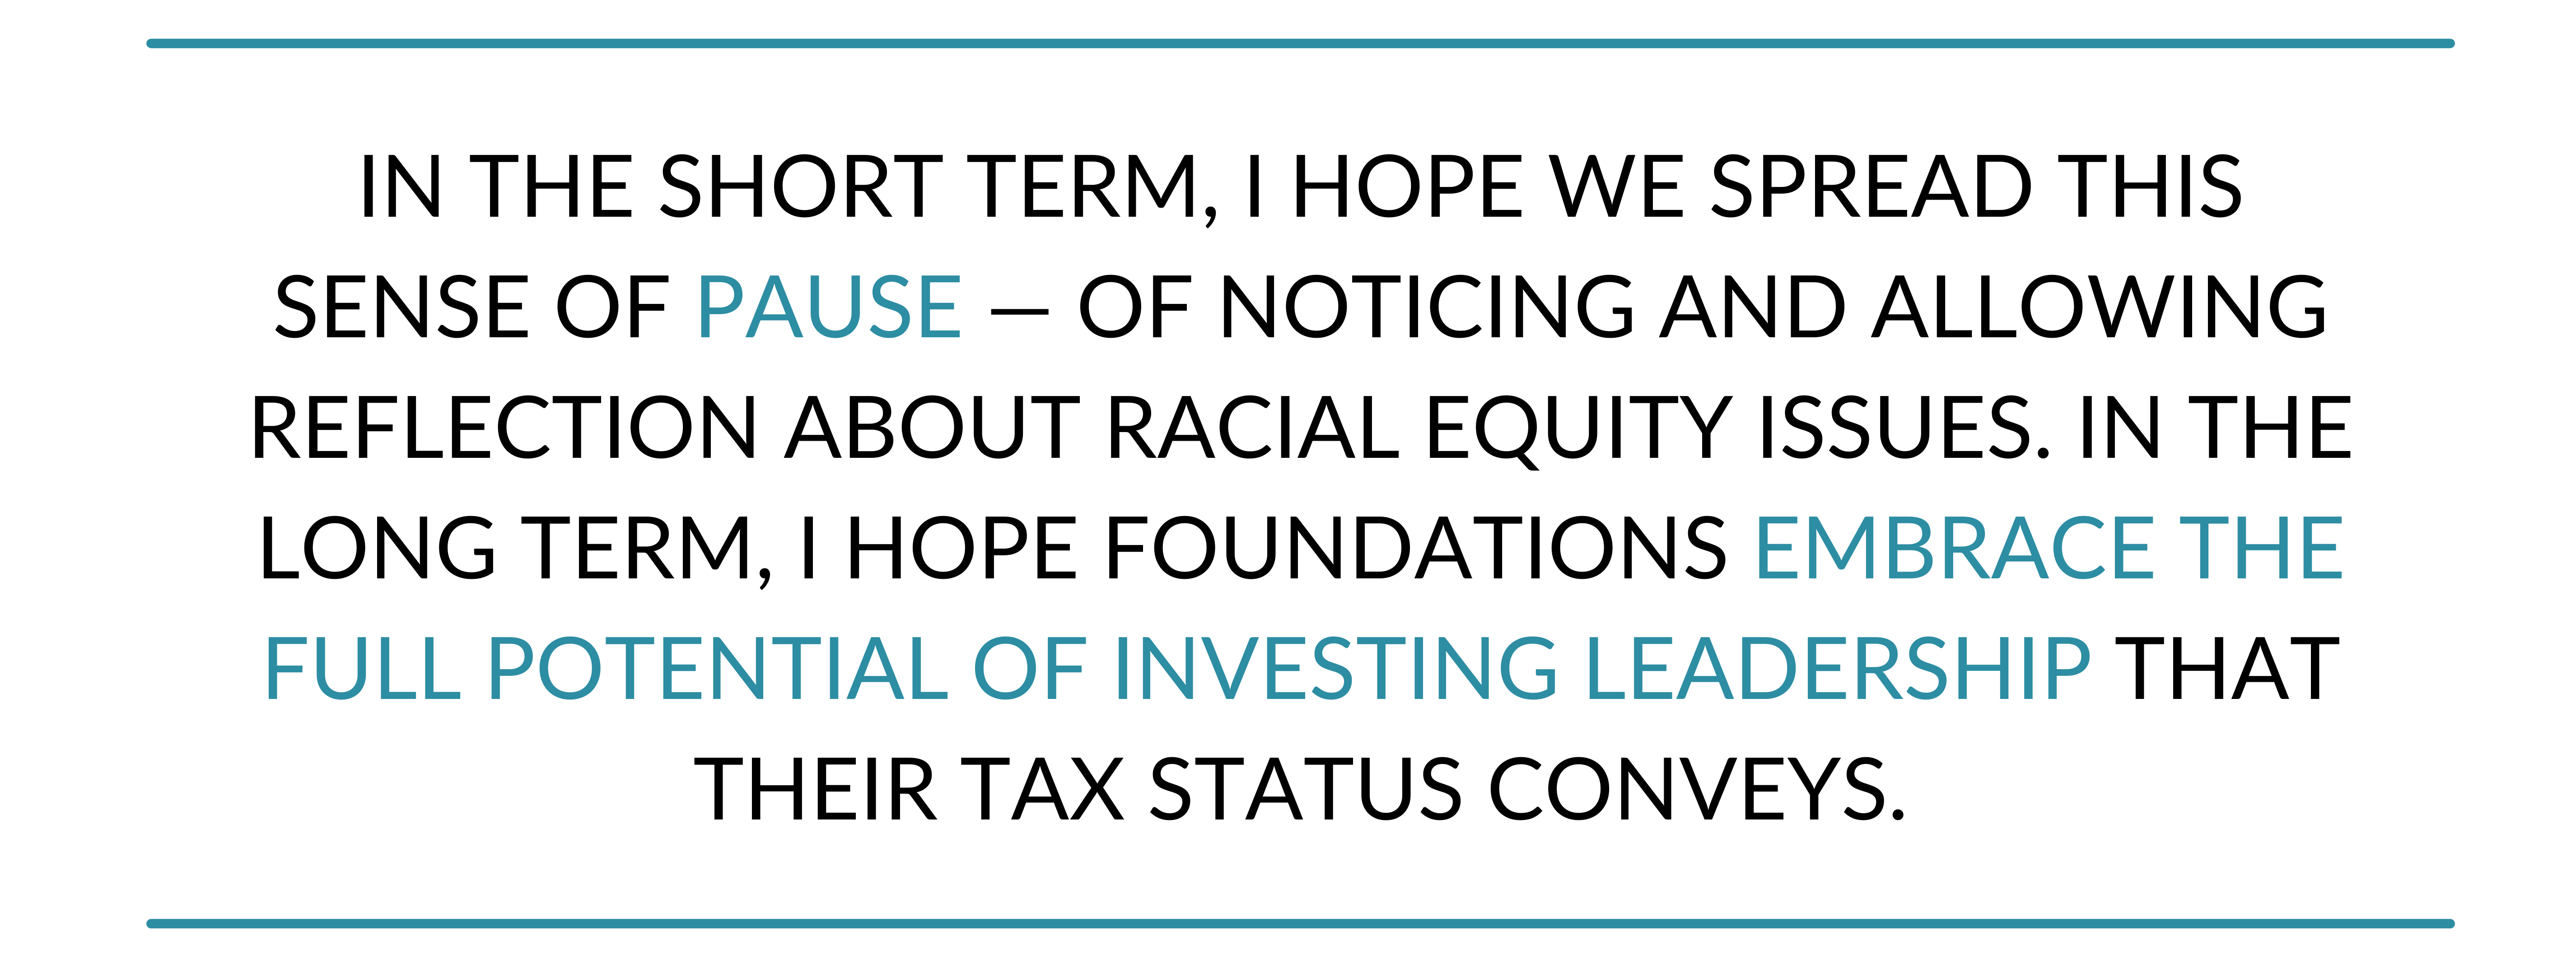 Investing leadership for racial equity